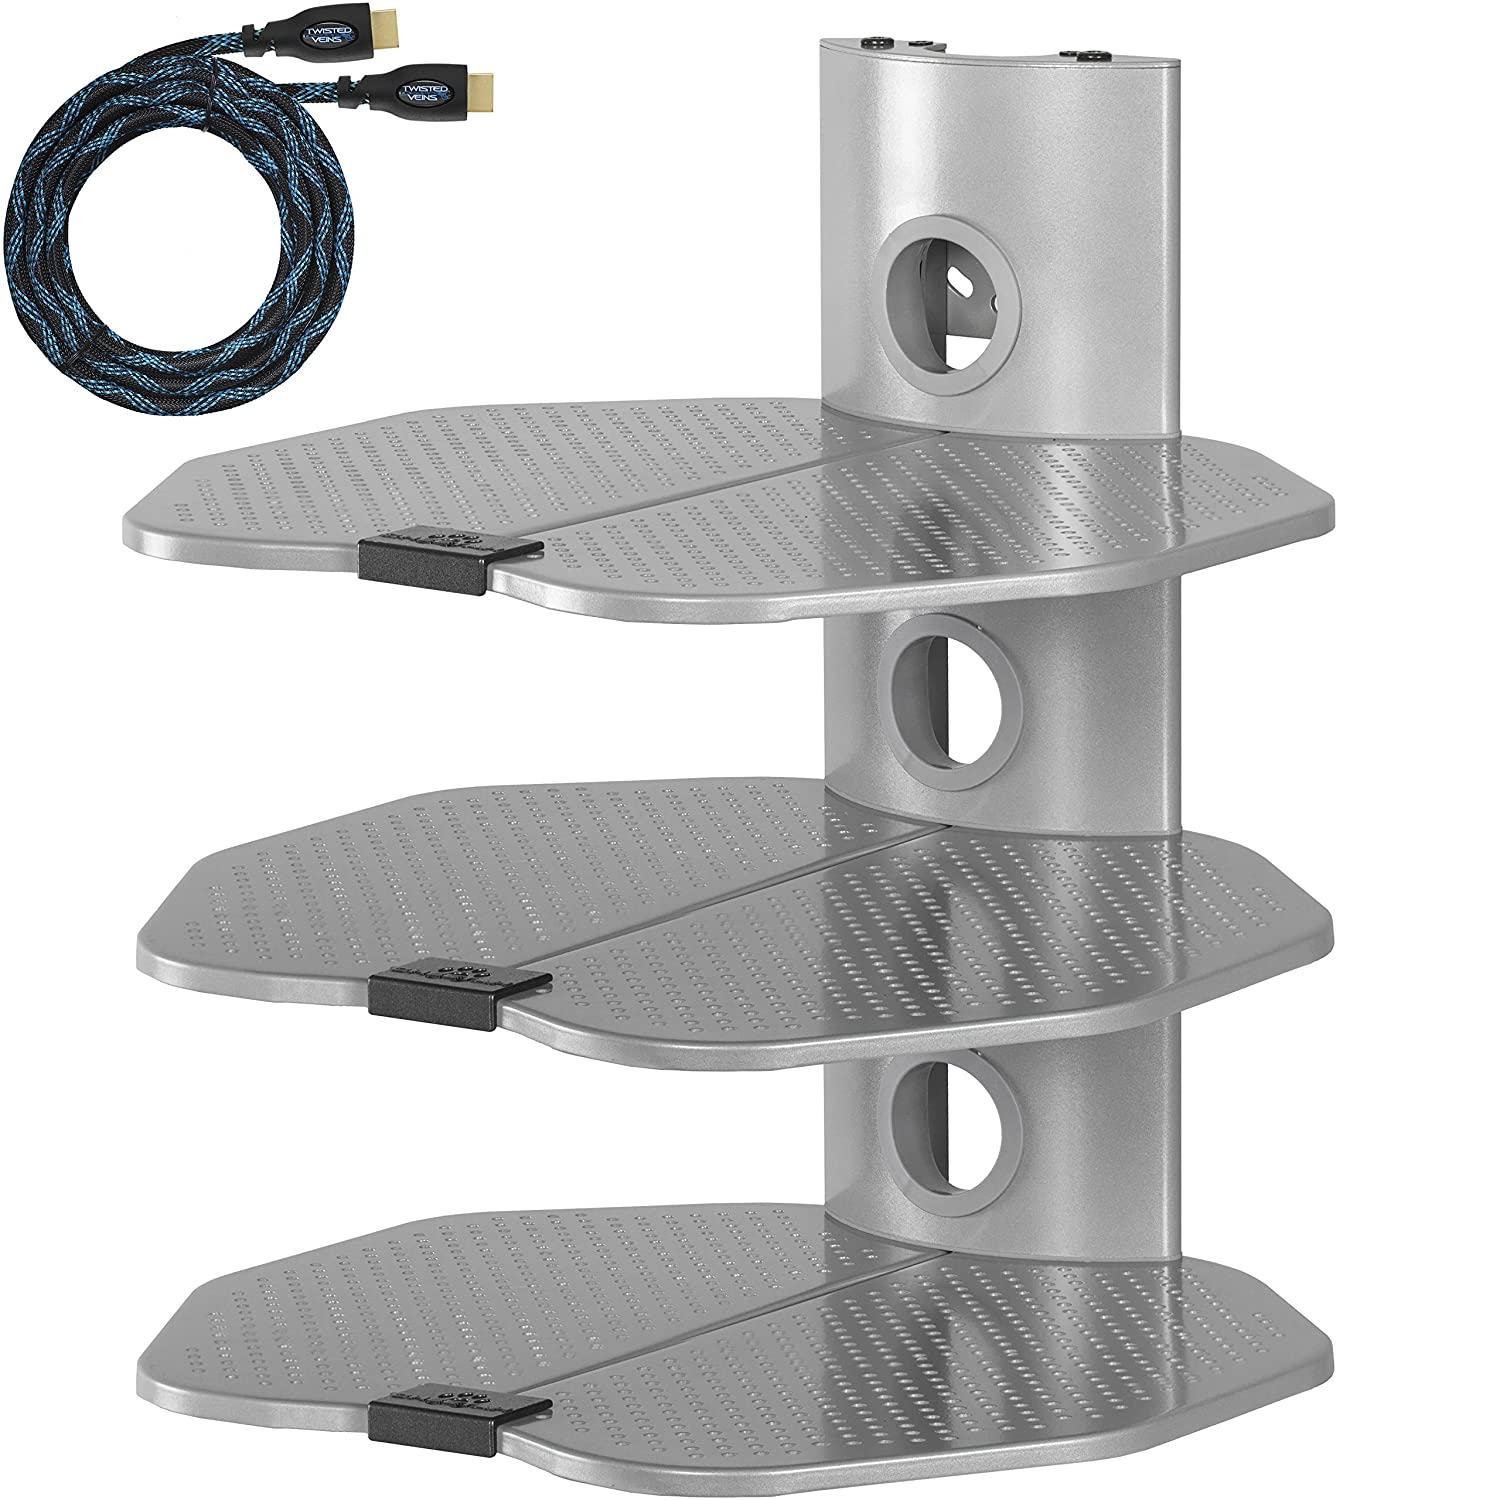 Amazon cheetah mounts as3s 3 shelf tv component wall mount amazon cheetah mounts as3s 3 shelf tv component wall mount shelving bracket with 18x16 shelf 15 twisted veins hdmi cable and cable management for amipublicfo Image collections